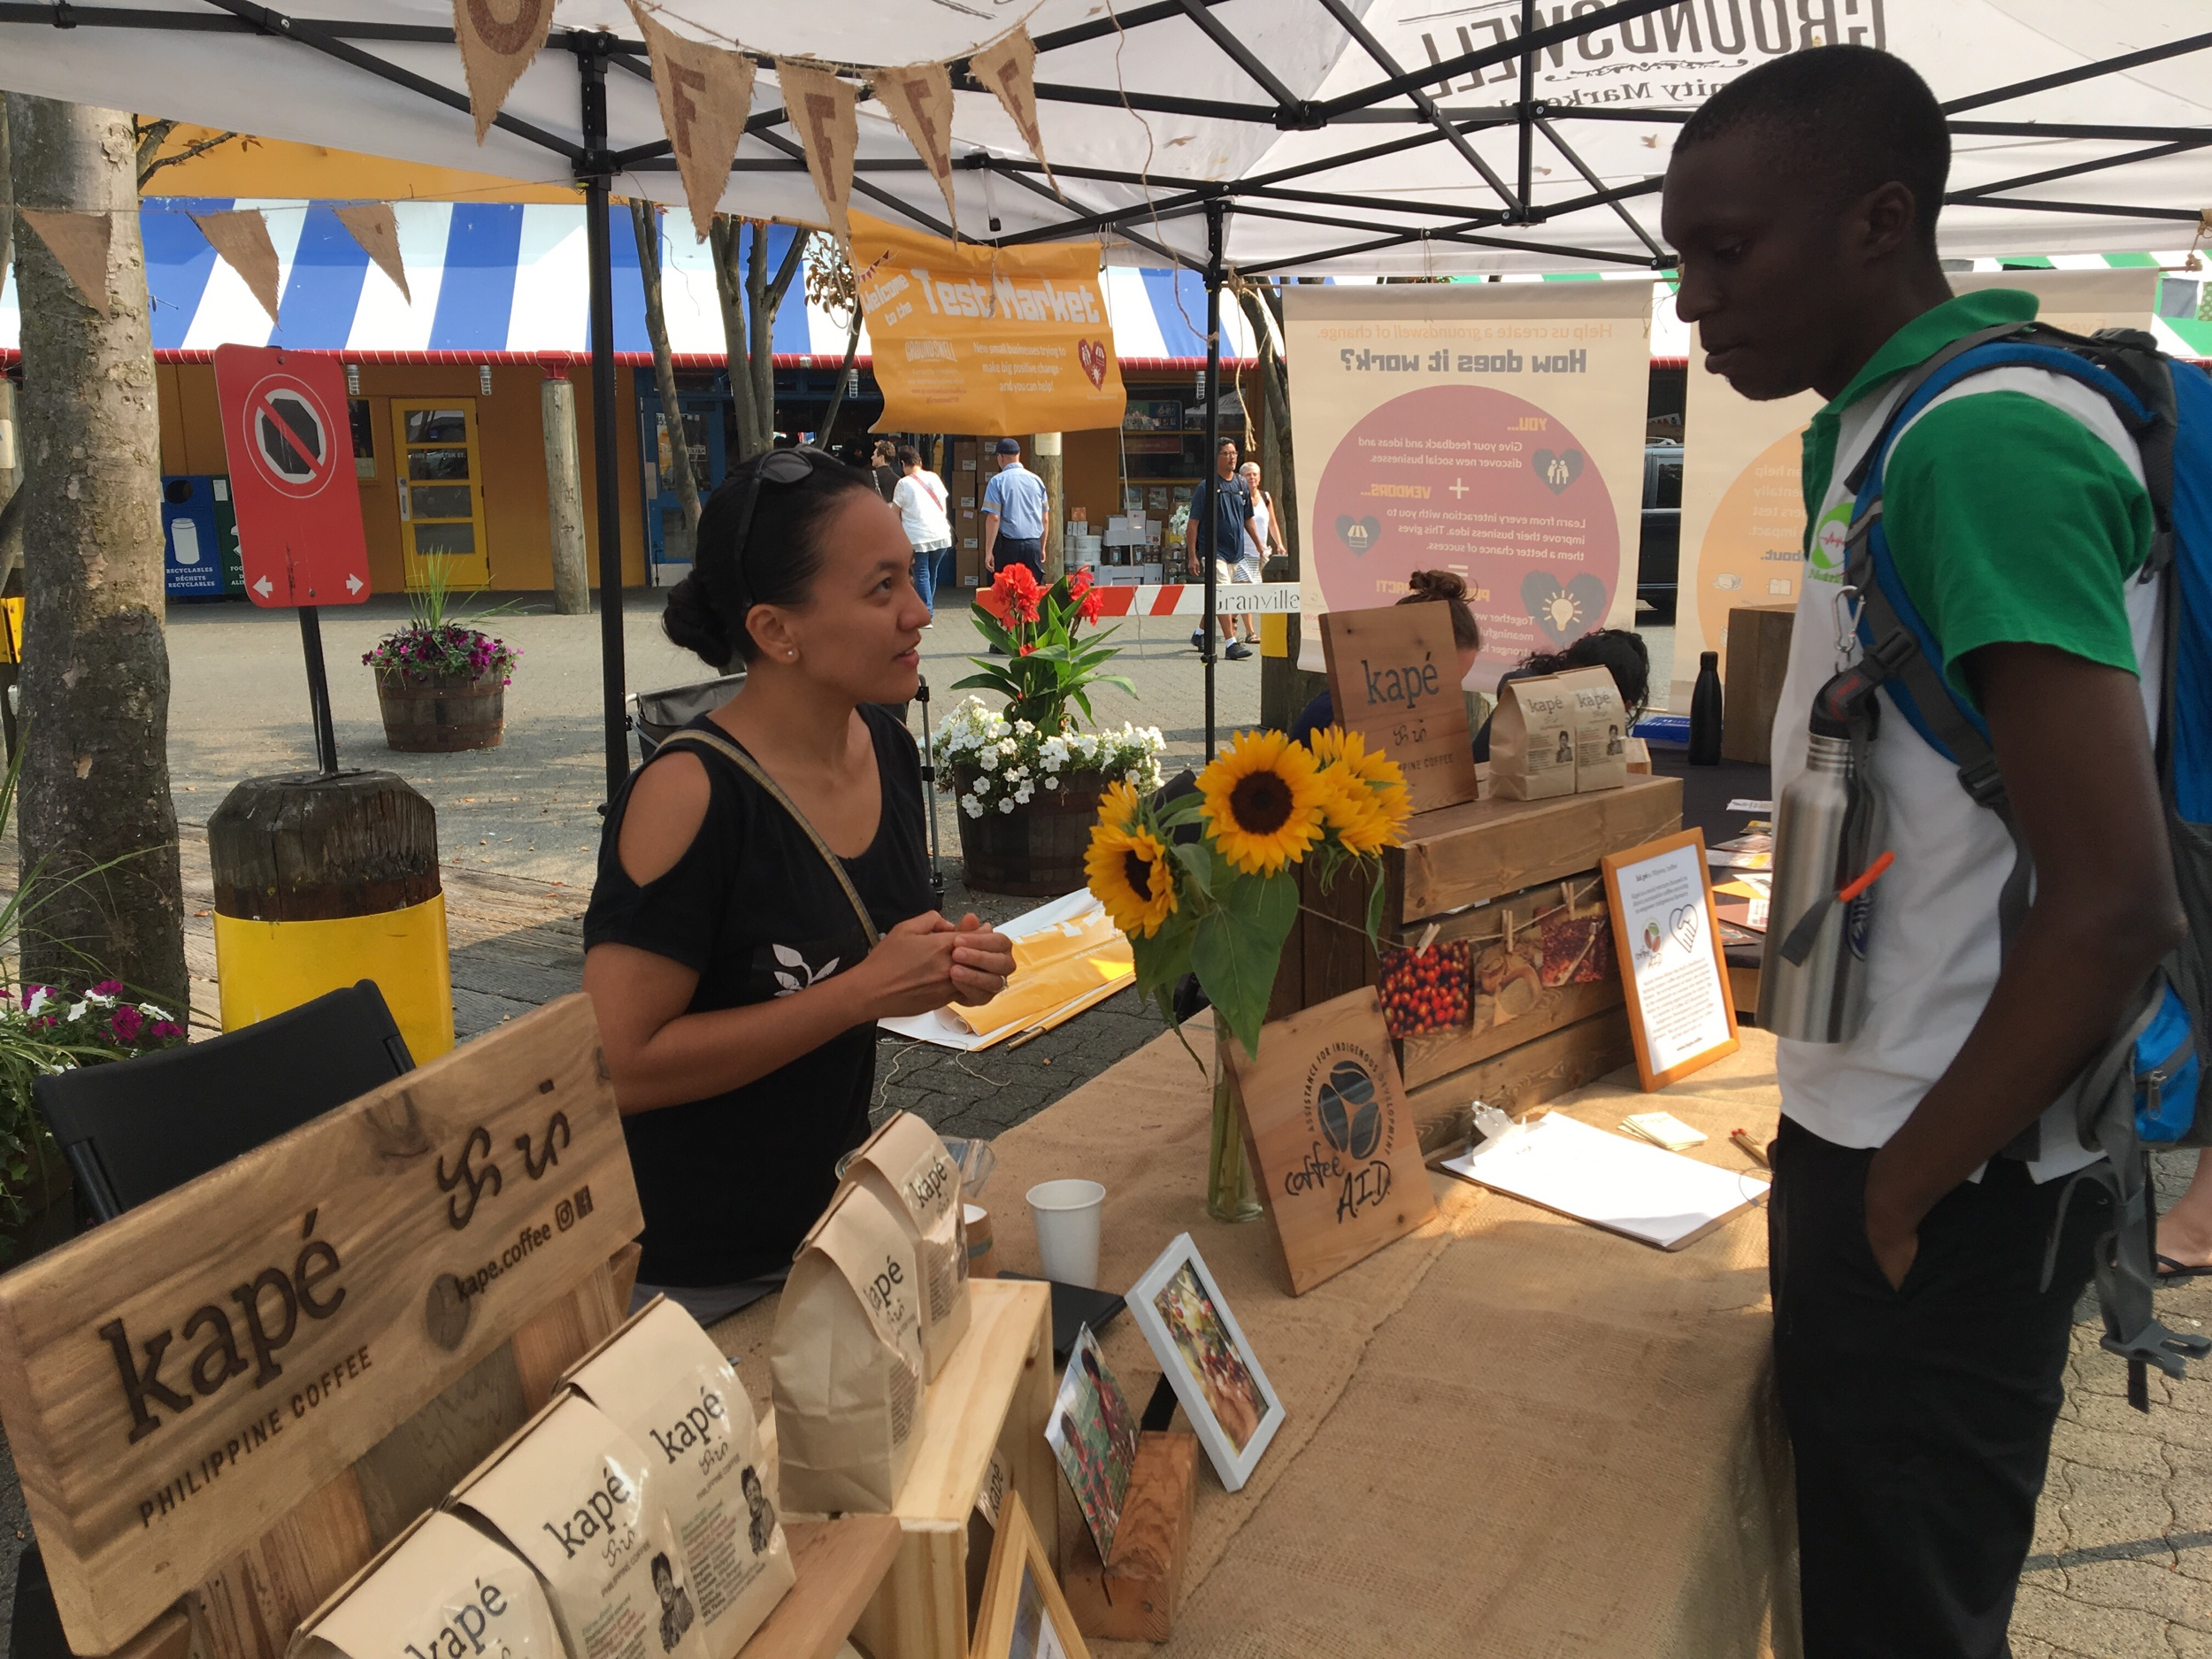 Groundswell Test Market - Tuesdays 11am-4pm at The Chain & Forge, Granville IslandJuly 16, 23, 30, August 6, 13, 20